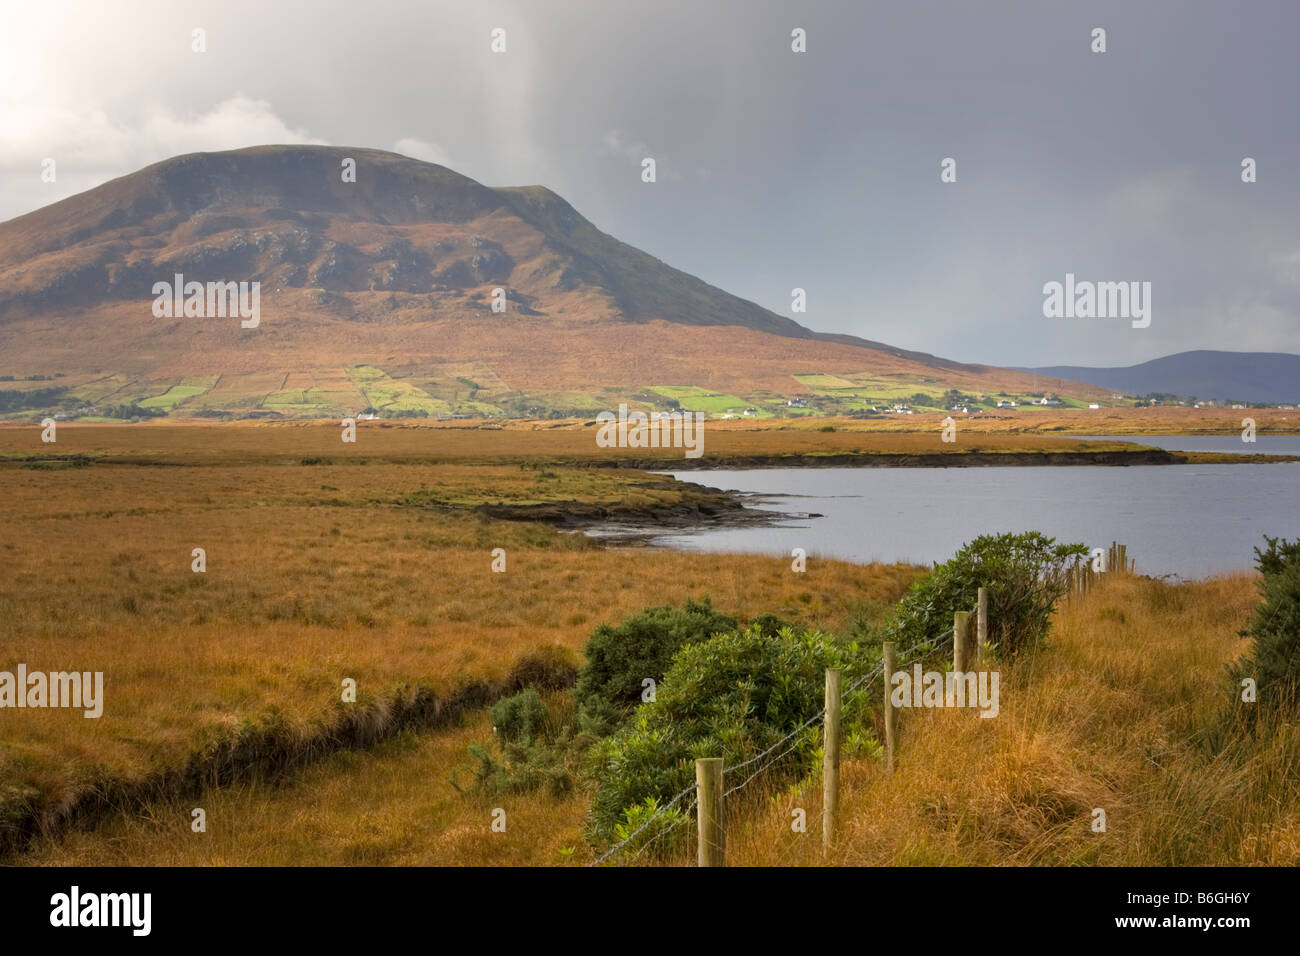 Corraun Peninsula and Achill Island, County Mayo, Republic of Ireland - Stock Image